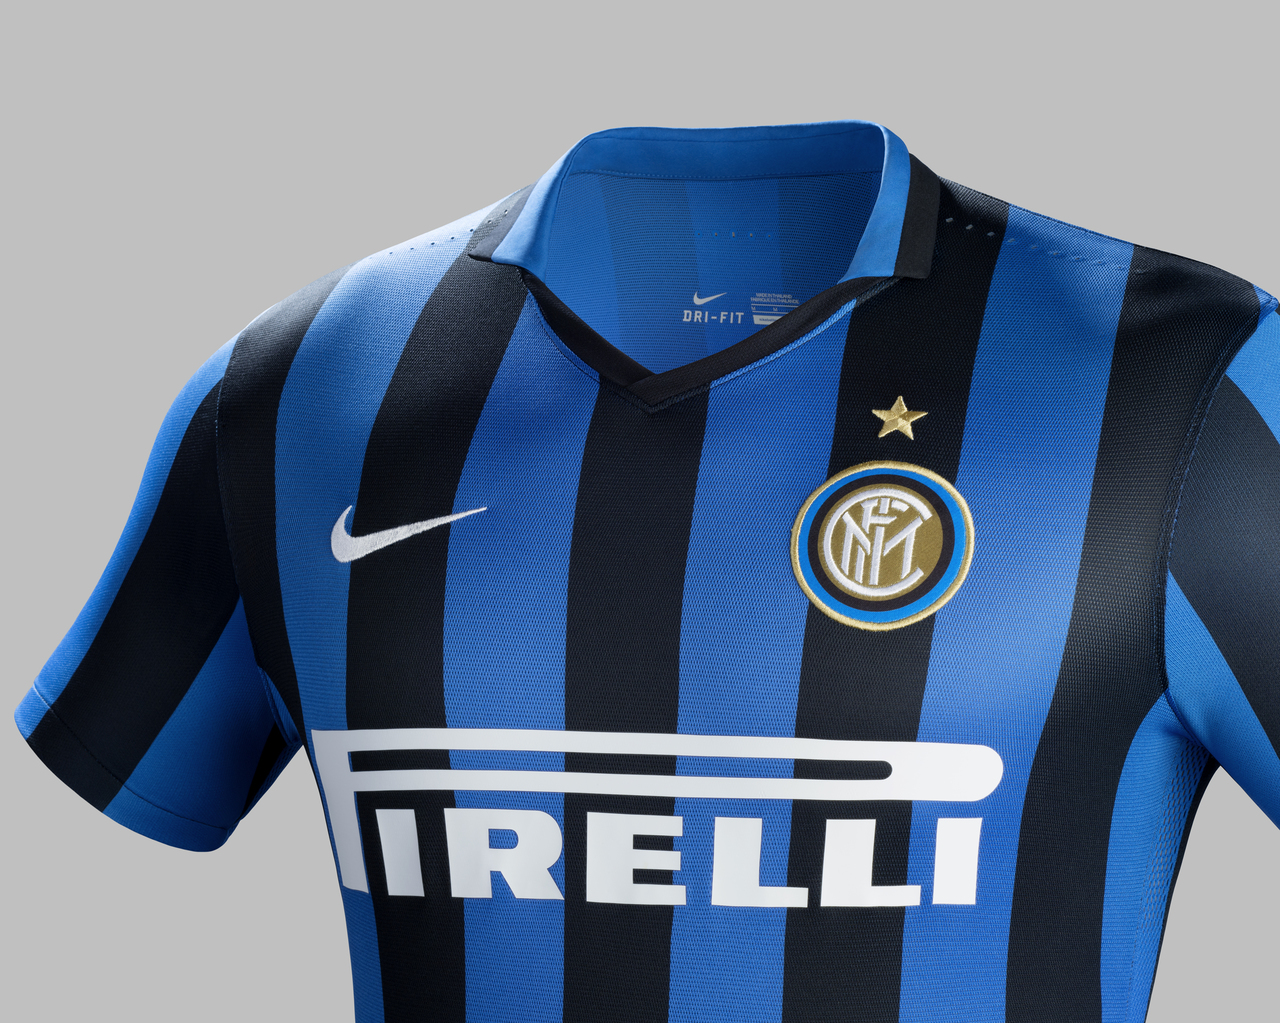 premium selection 80fba 052f5 Inter Milan 15/16 Nike Home Football Shirt | 15/16 Kits ...